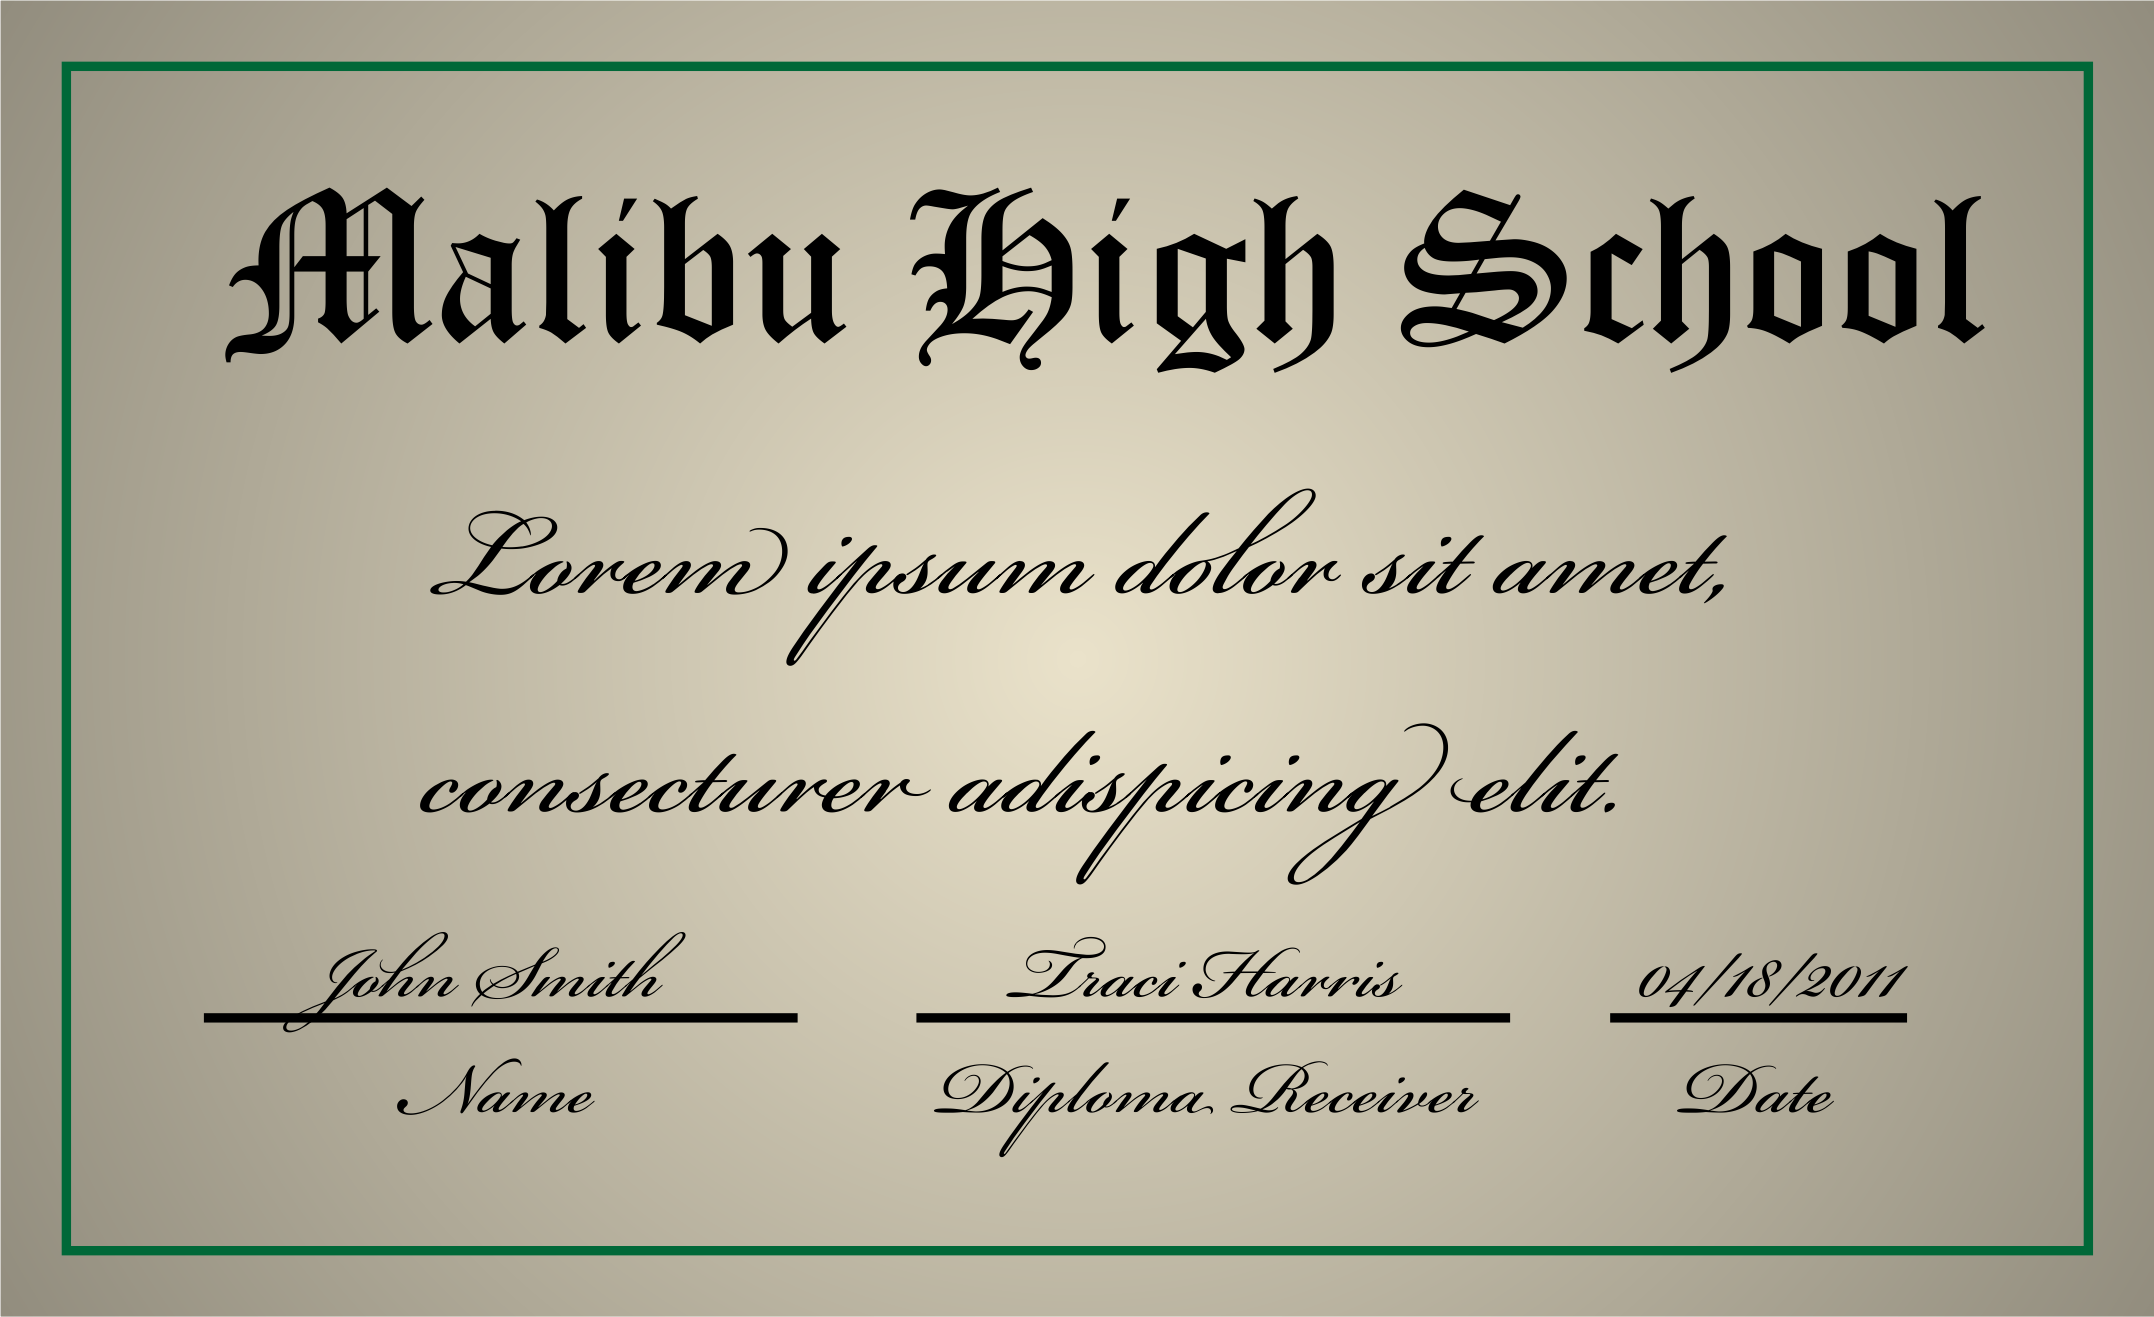 A high school diploma by jhnri4